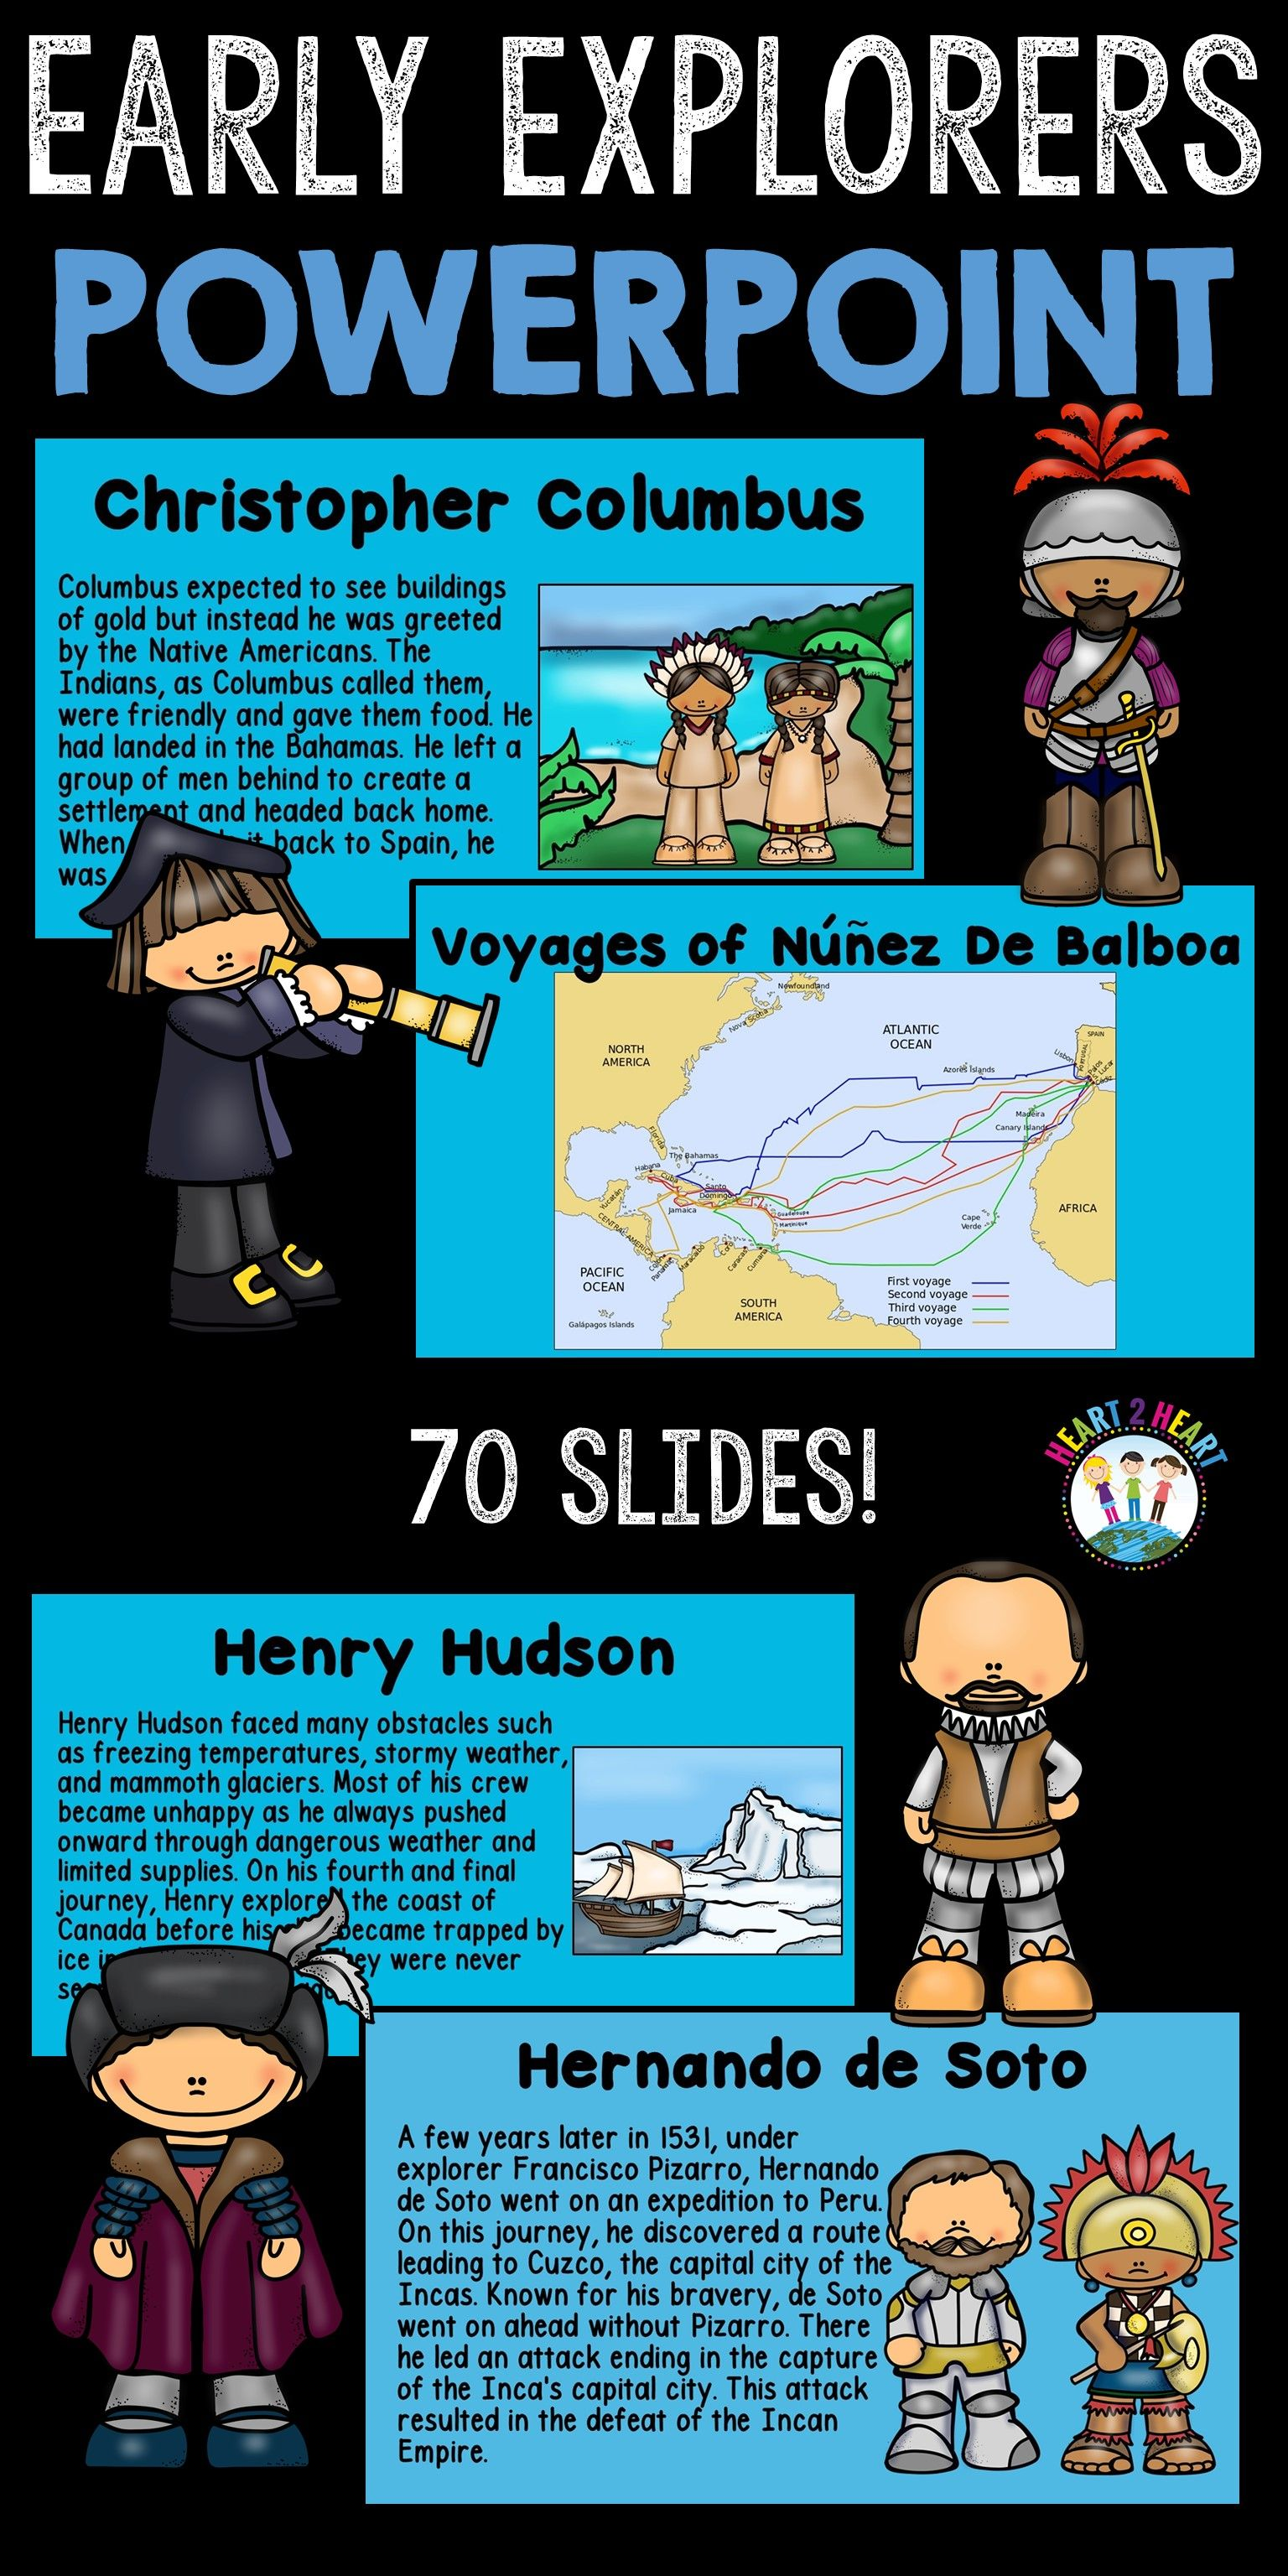 Early European Explorers Powerpoint The Age Of